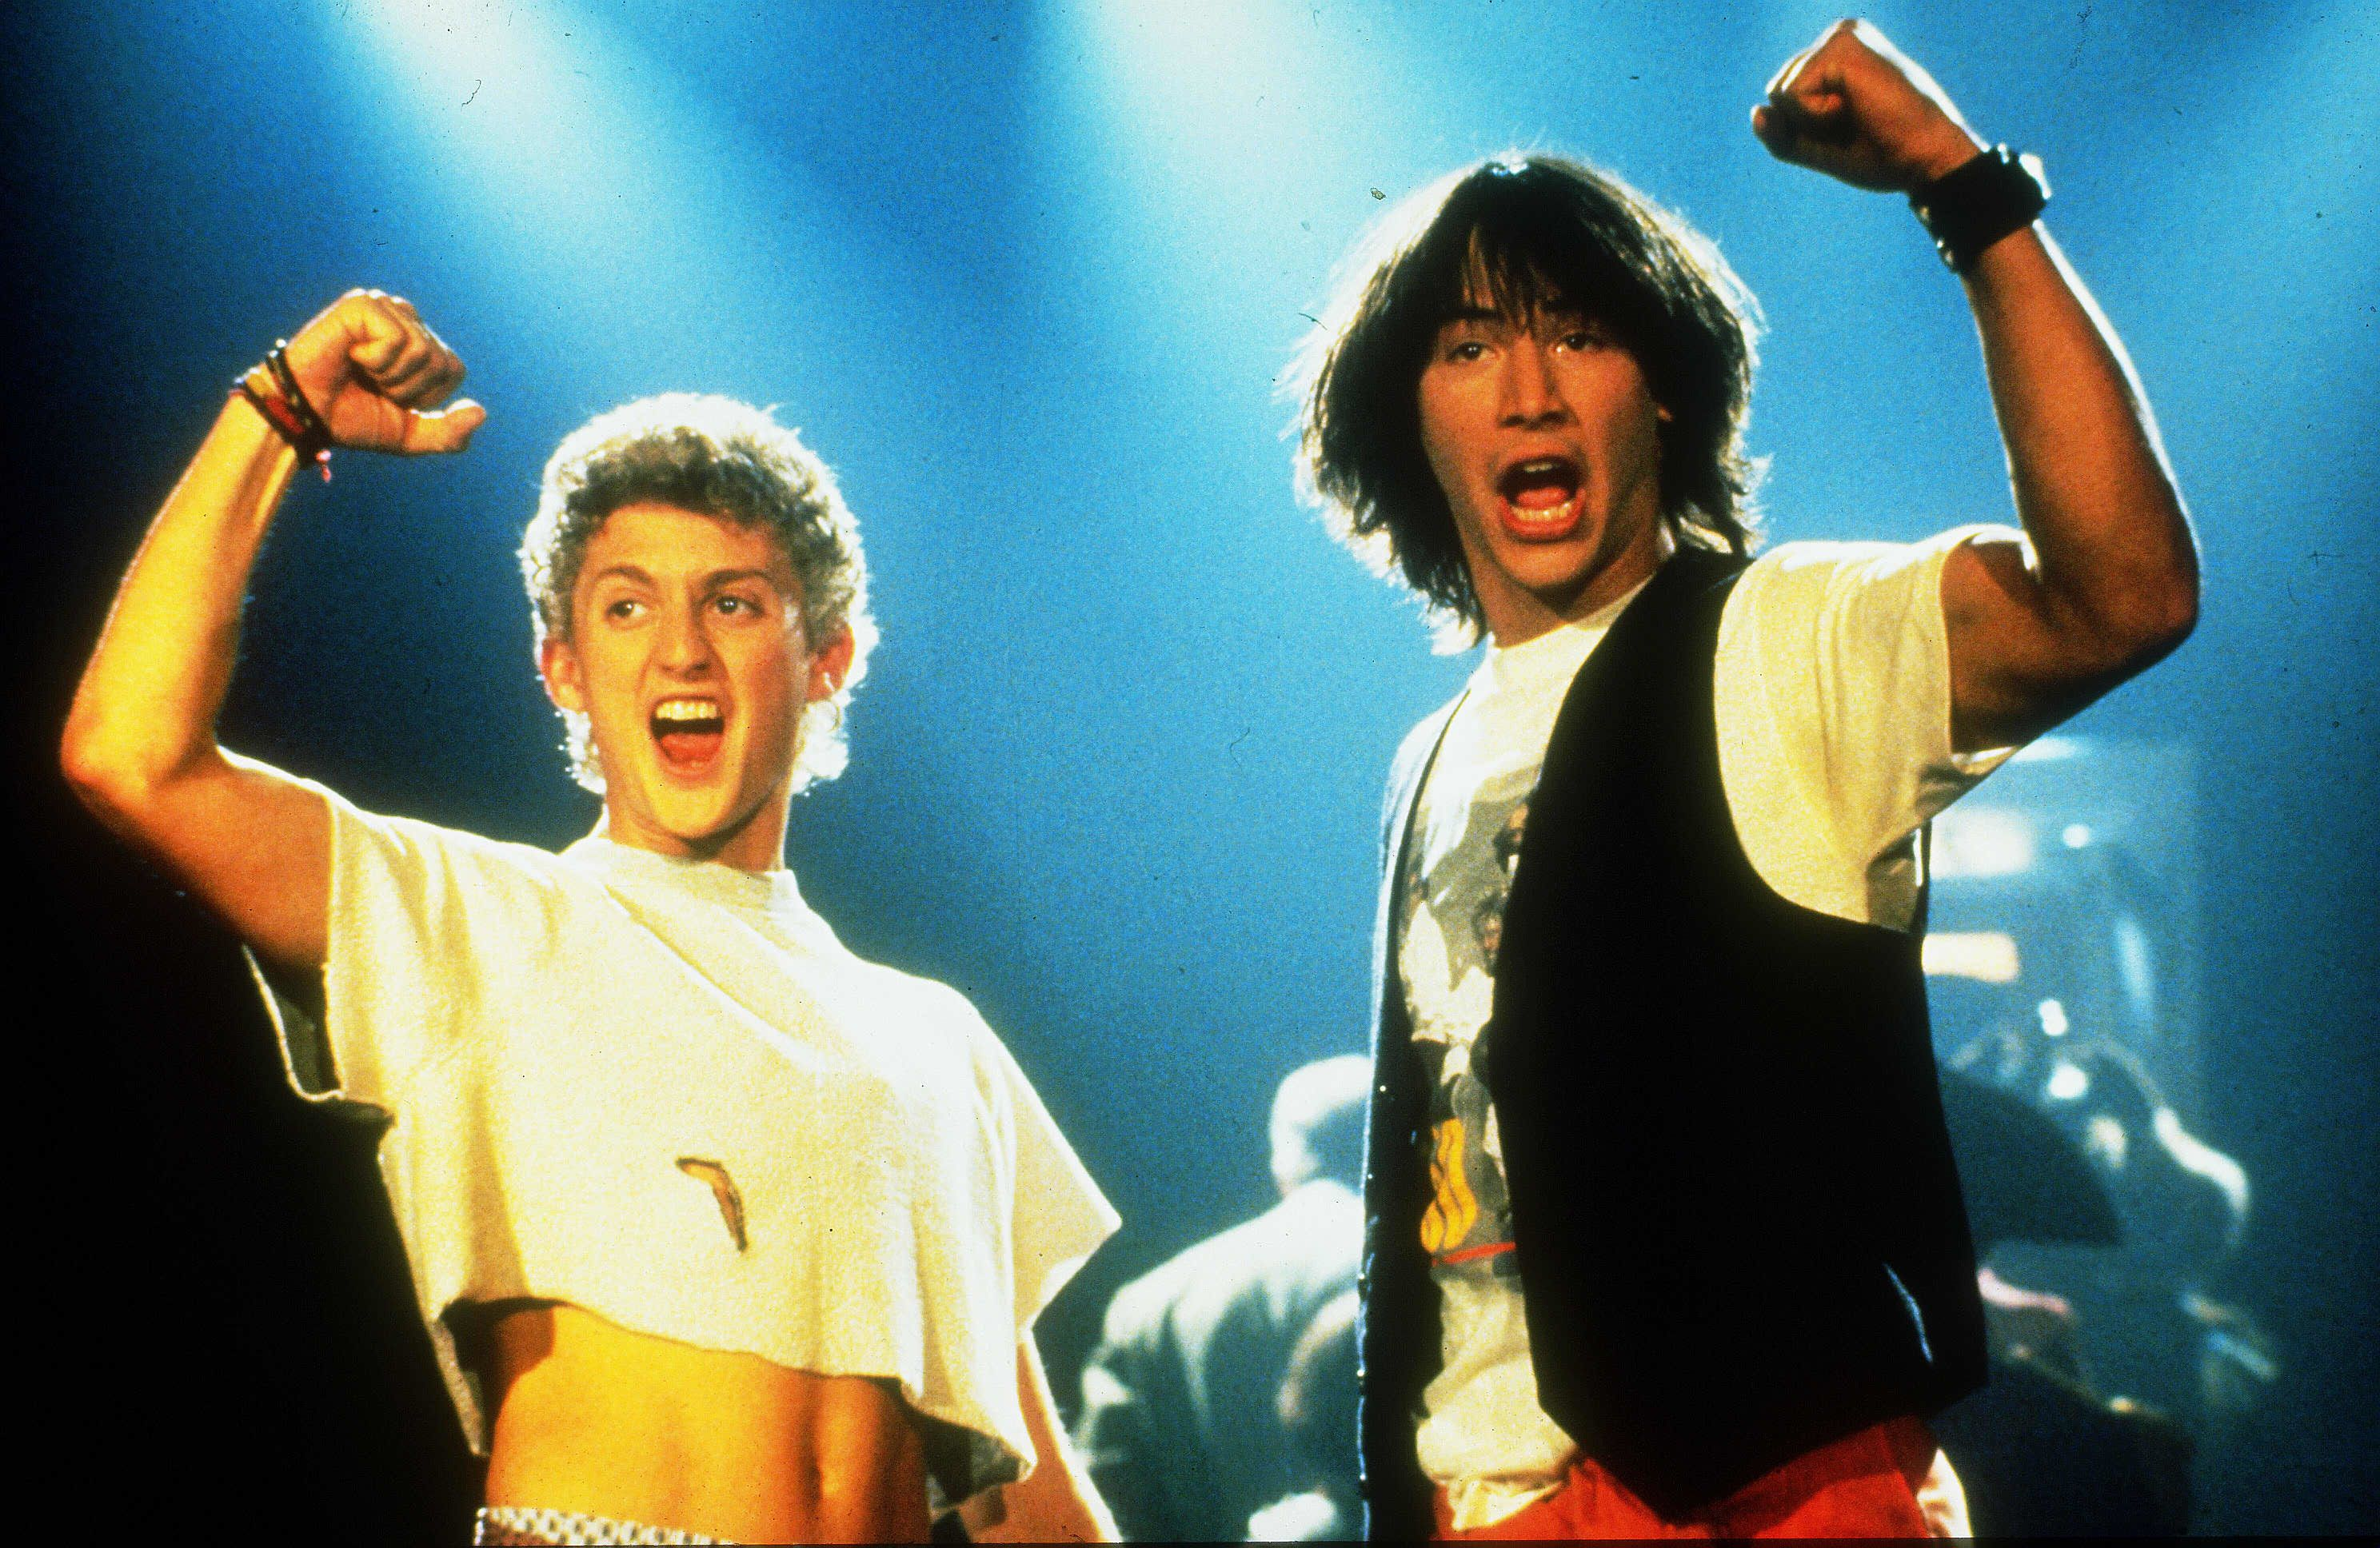 Keanu Reeves, Alex Winter to reunite after 27 years